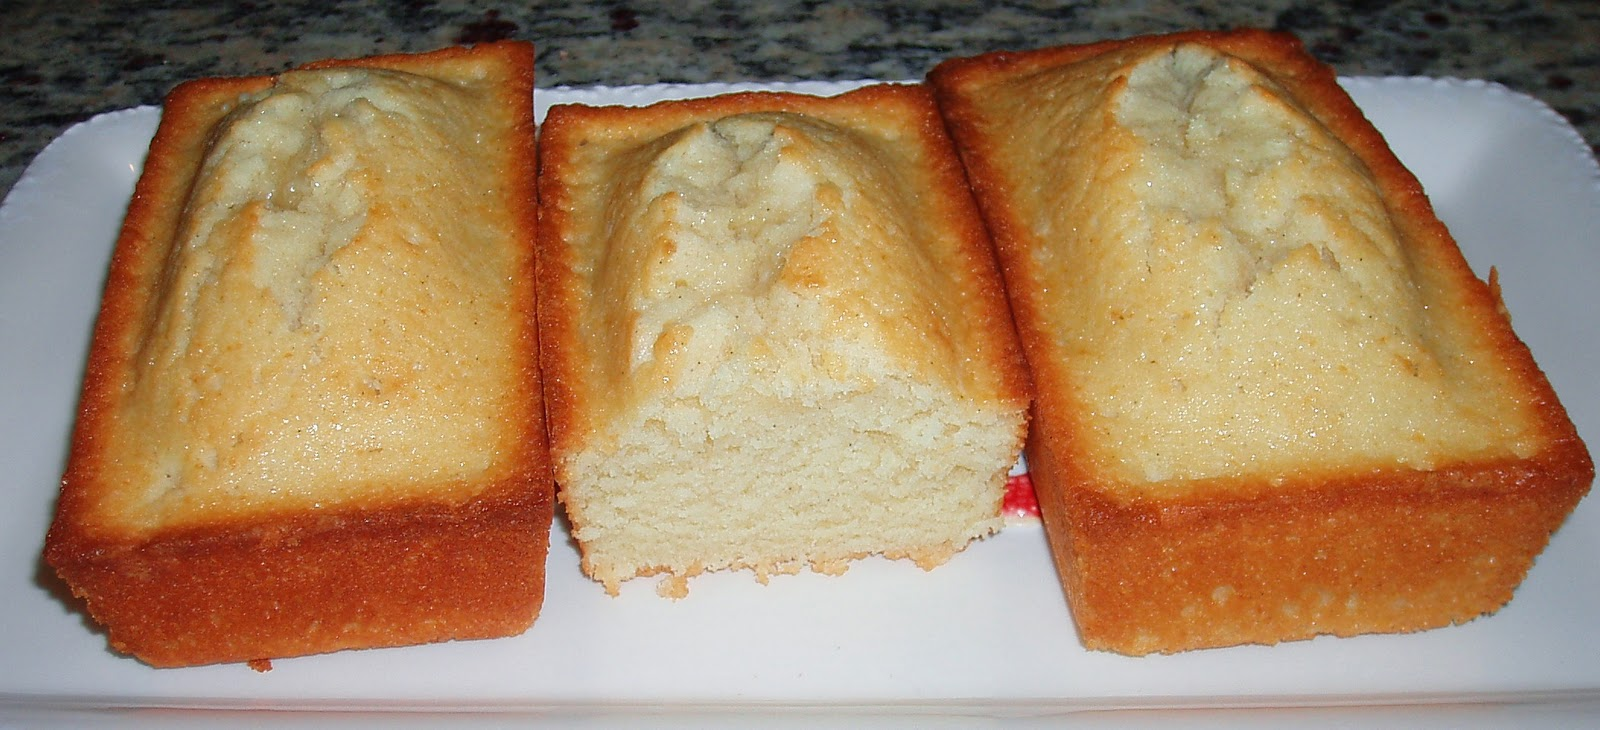 The Pastry Chef's Baking: Pound Cake